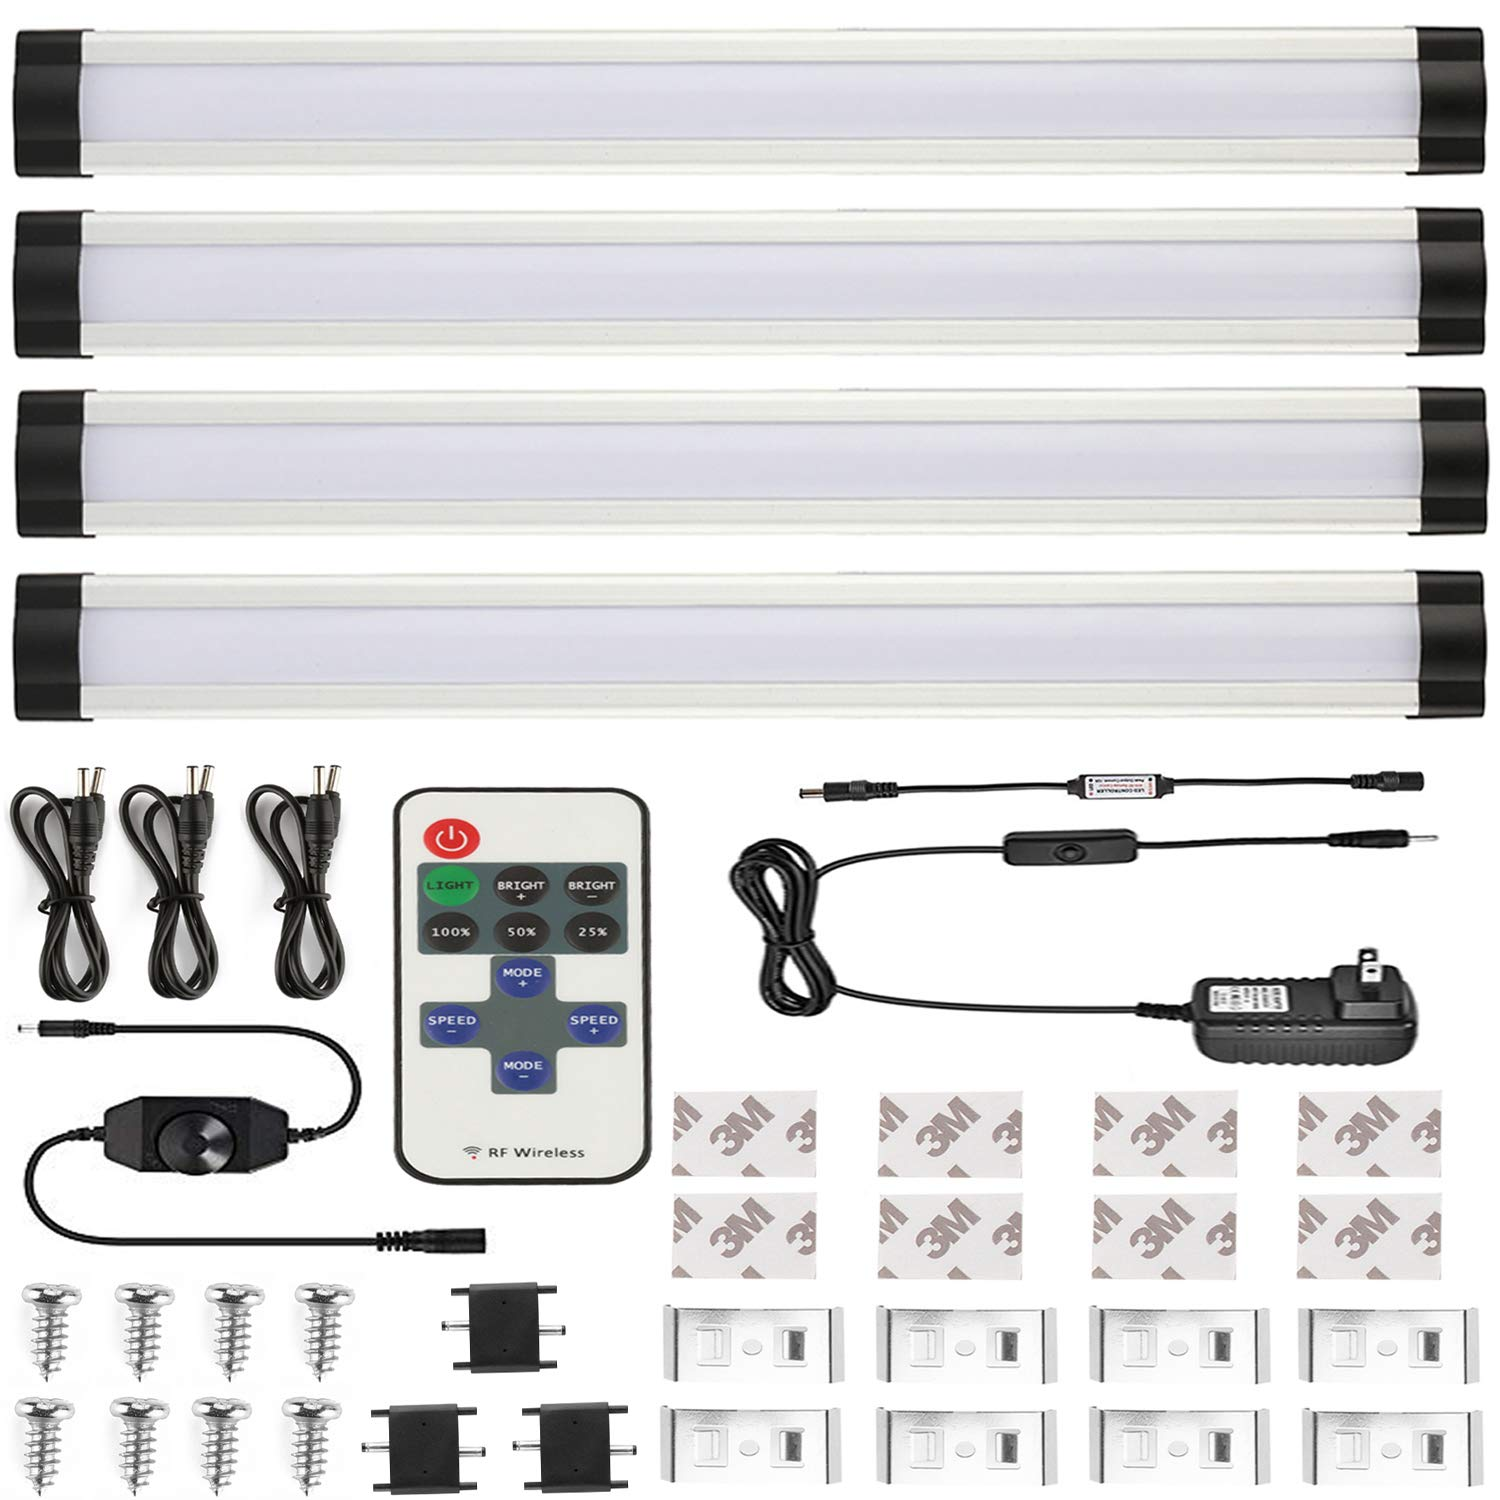 HuaXinV 12in IR Cordless Dimming LED Under Cabinet Lighting, 12W 3000K Warnwhite 1000LM, Milk Cover Led Strips,11key Remote Control (Warm White 4P) with 3M tape (Warm White 4P)